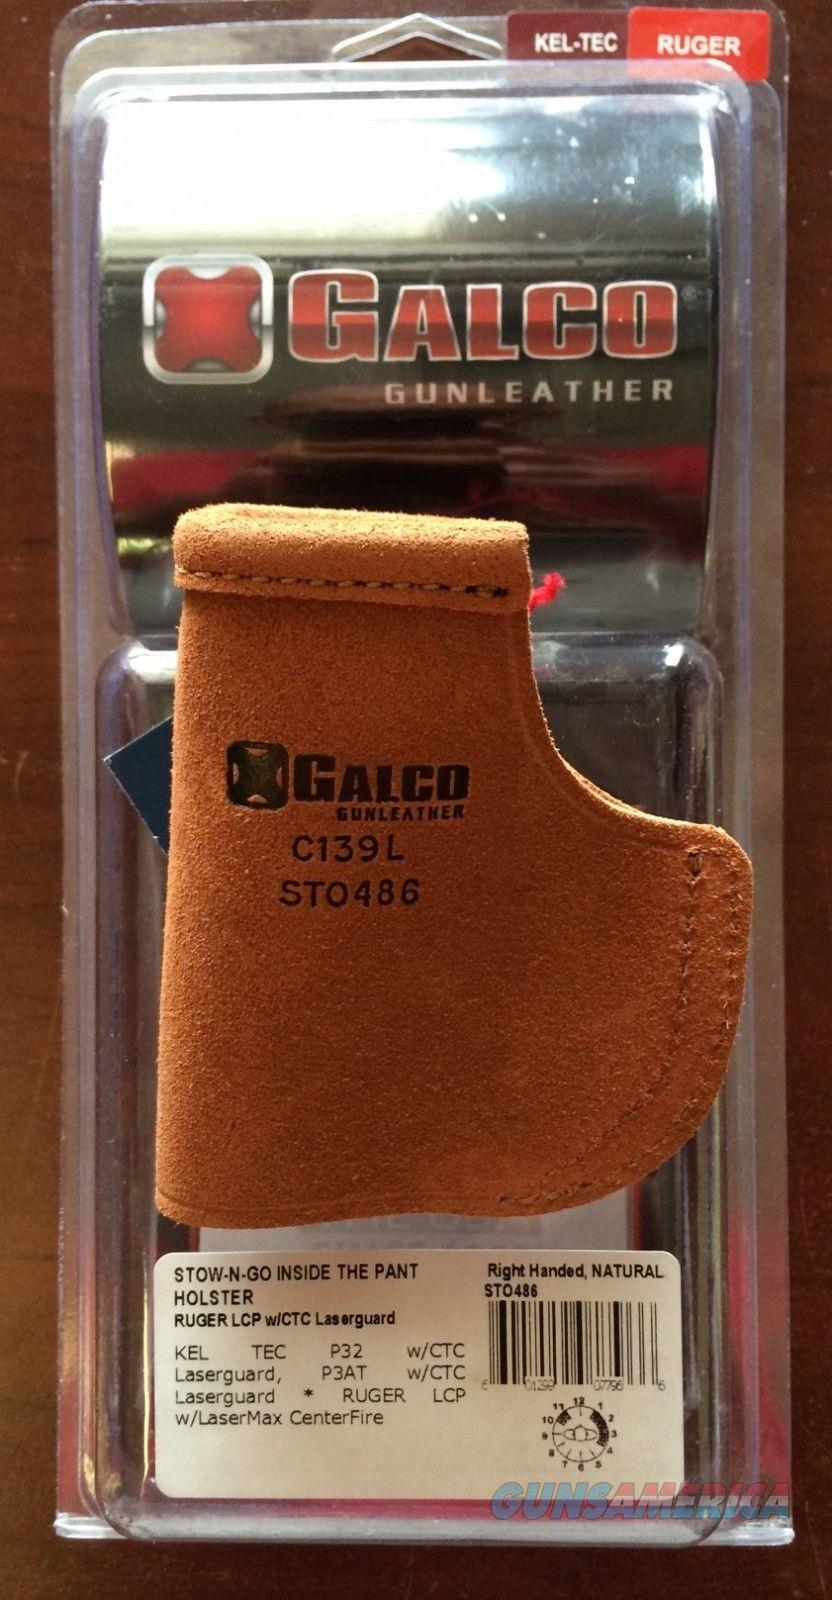 Galco Stow-N-Go Holster Ruger LCP with Laserguard  Non-Guns > Holsters and Gunleather > Concealed Carry